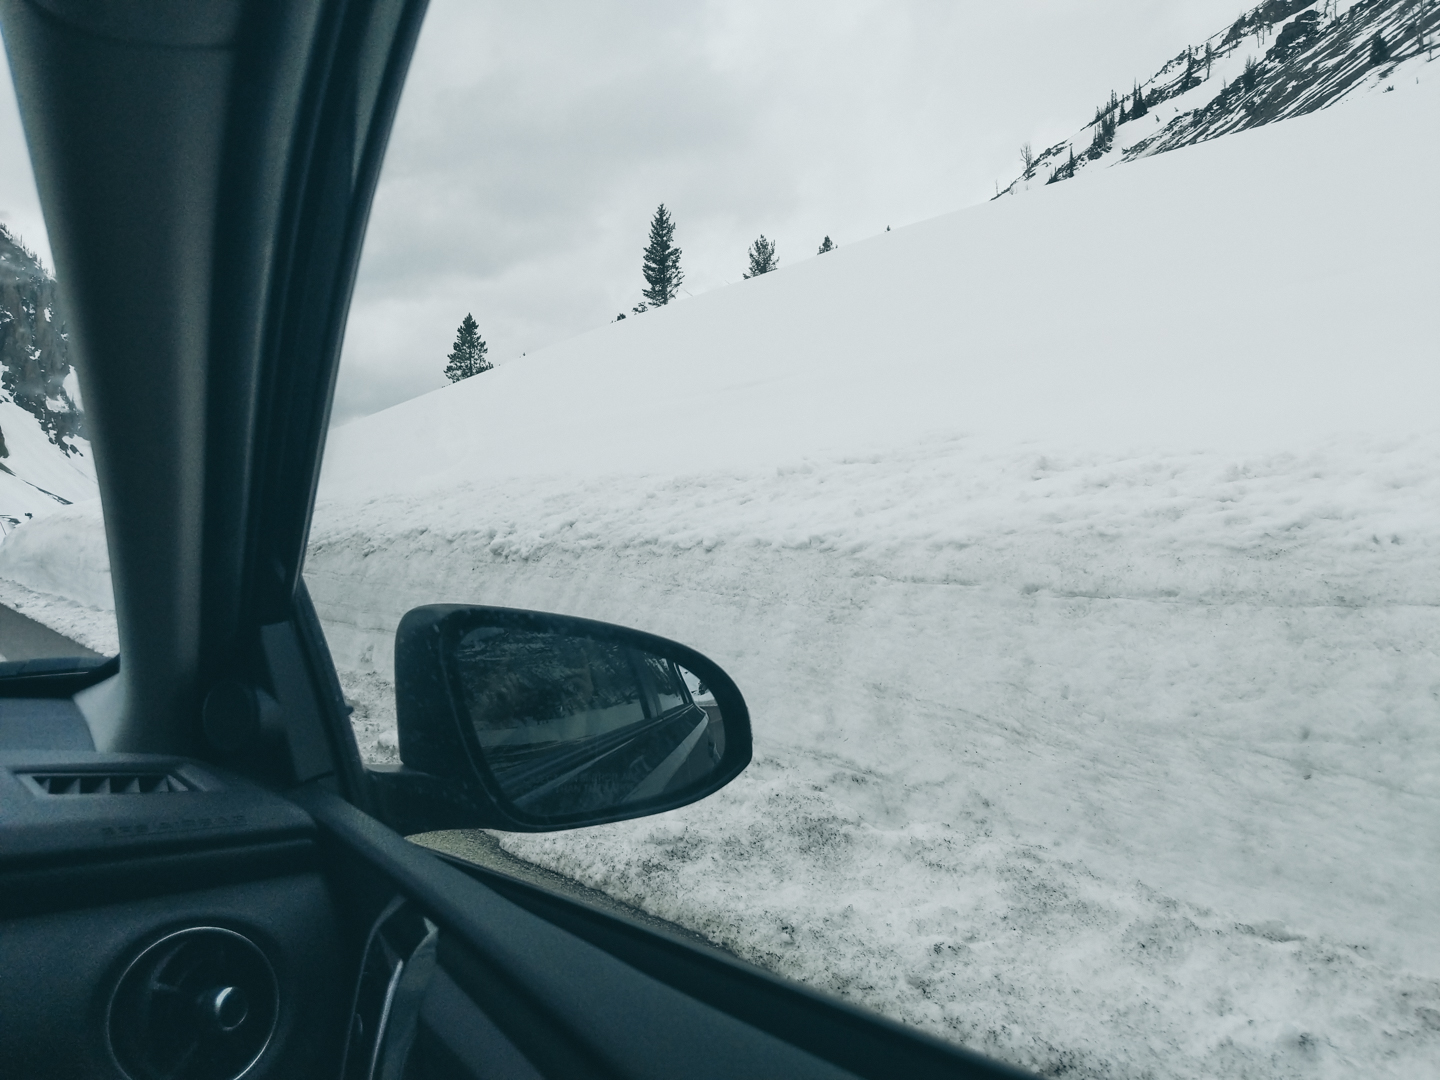 The snow between Mount Rushmore and Yellowstone National Park